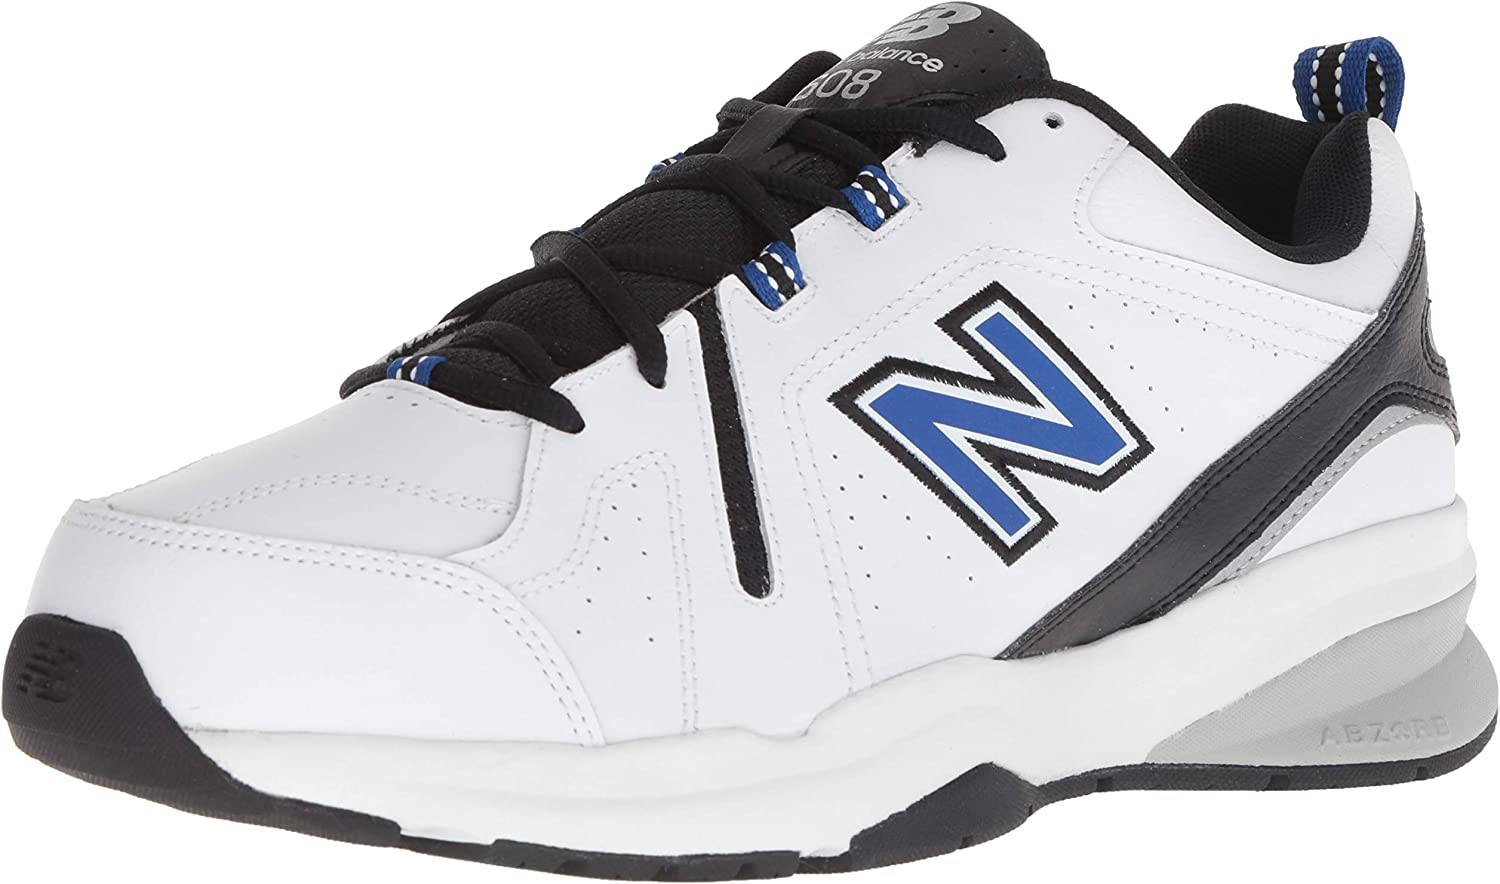 New Balance - Mens MX608V5 skor, 7 UK UK UK - Brödd D, vit  Team Royal  spara upp till 30-50% rabatt